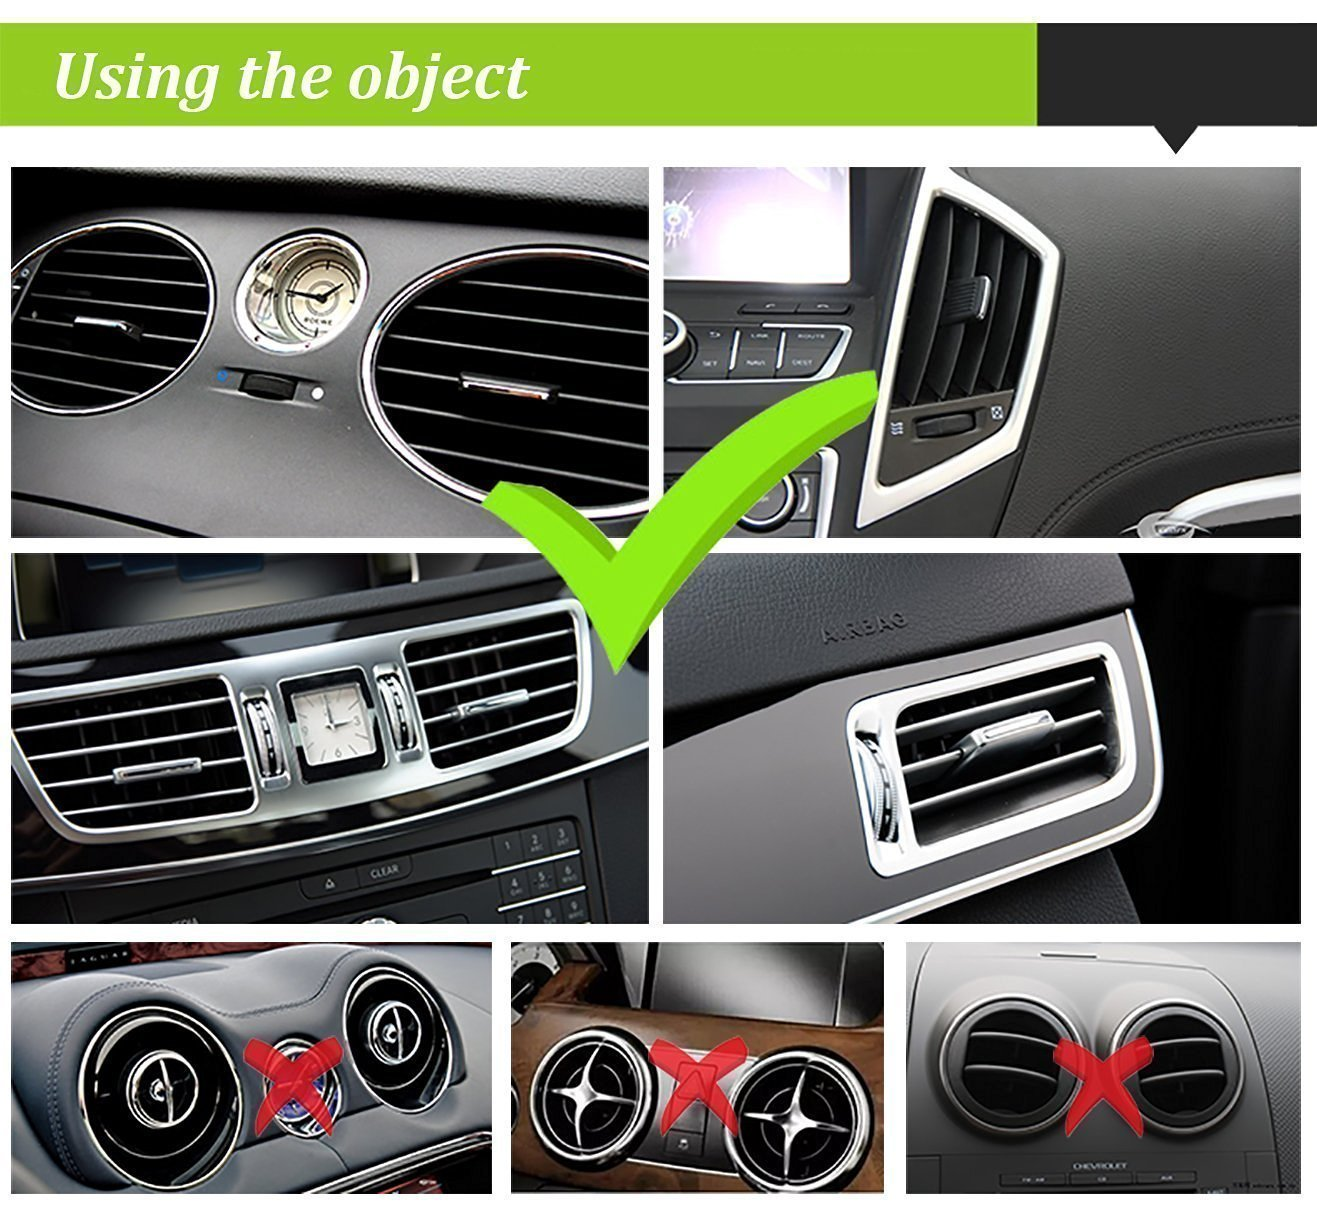 Beam Electronics Universal Smartphone Car Air Vent Mount Holder Cradle Compatible with iPhone X 8 8 Plus 7 7 Plus SE 6s 6 Plus 6 5s 5 4s 4 Samsung Galaxy S6 S5 S4 LG Nexus Sony Nokia and More… by Beam Electronics (Image #7)